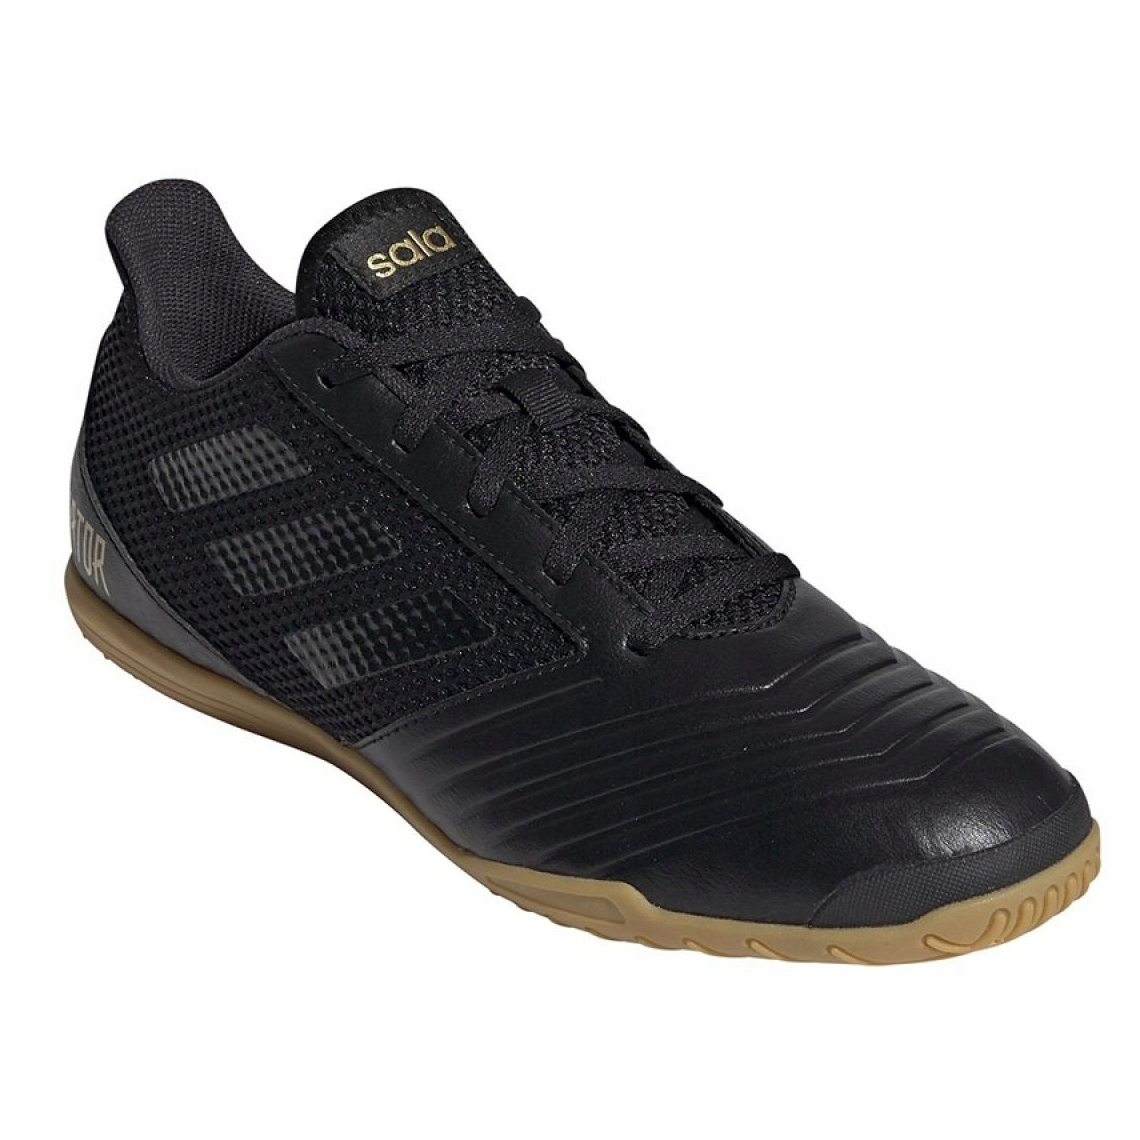 Details about Indoor shoes adidas Predator 19.4 In Sala M F35633